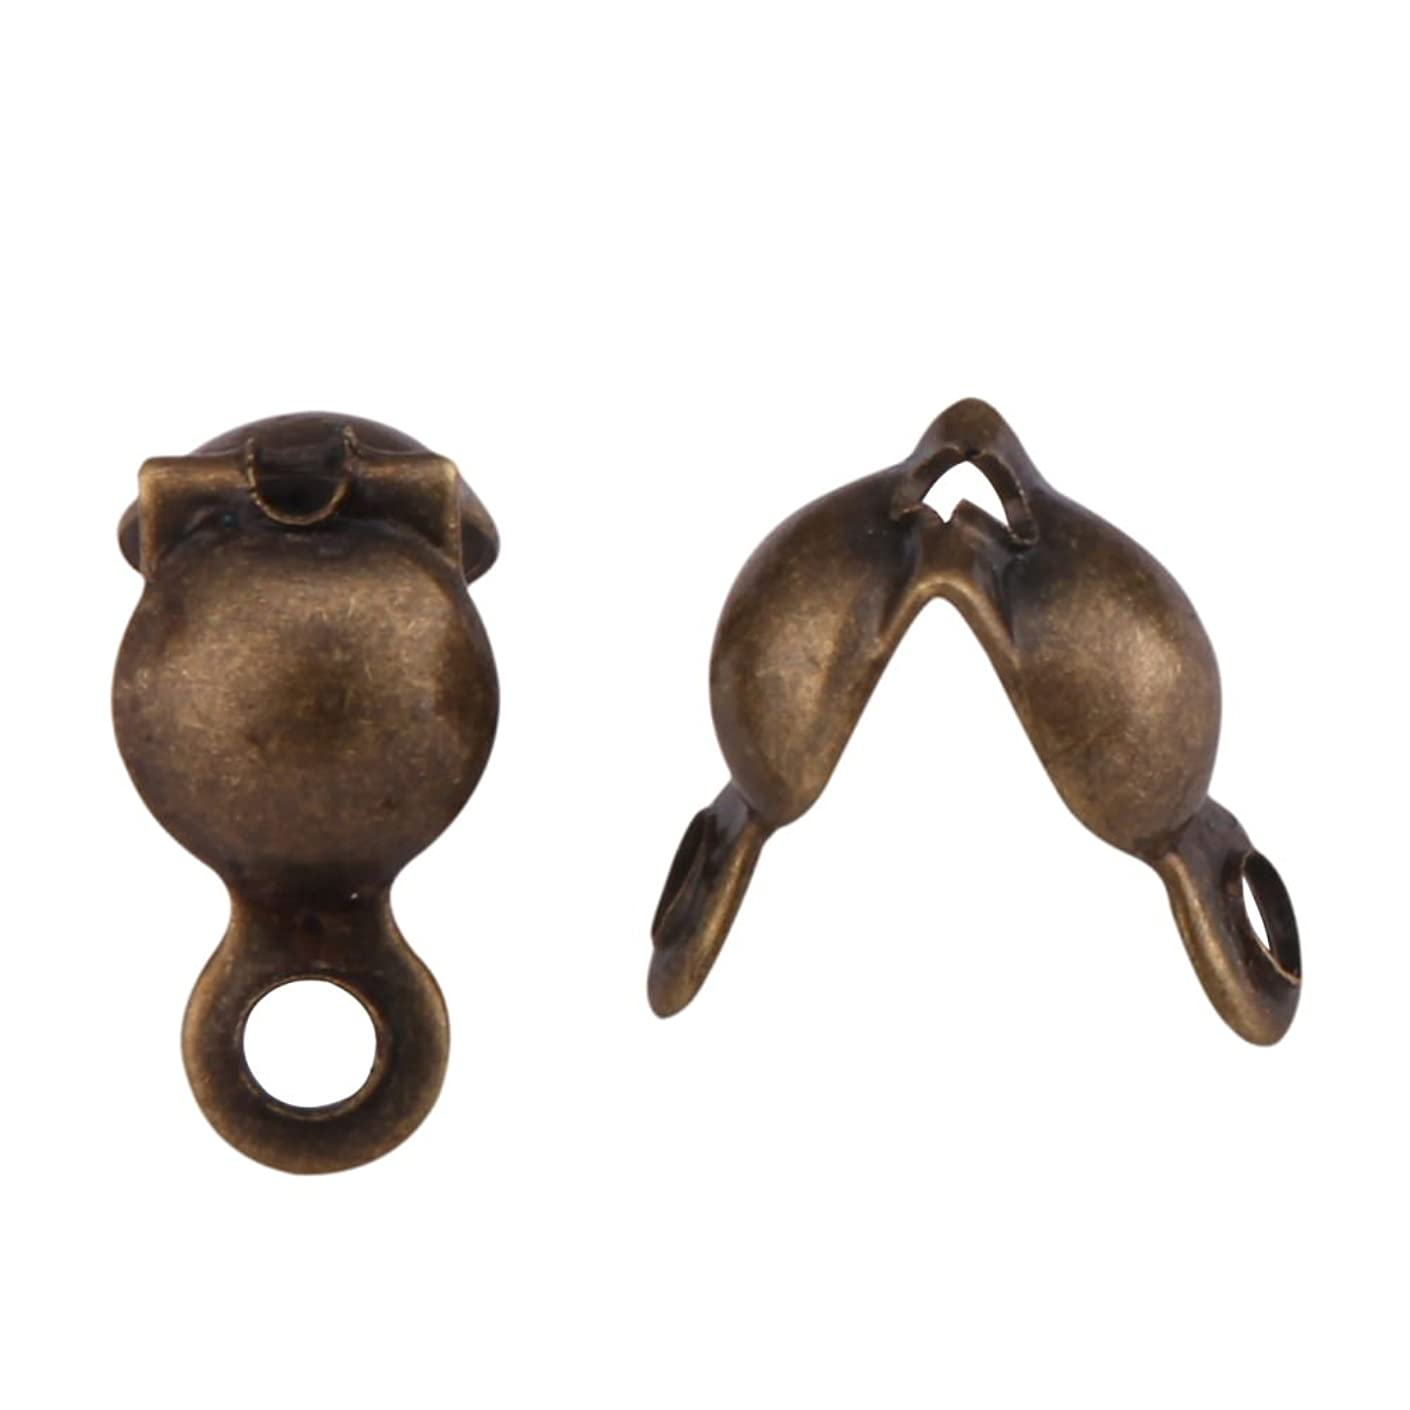 200pcs Top Quality Clamshell Calotte Endcaps Knot Cover 8mm Antique Bronze Plated Brass Bead Tips for Jewelry Craft Making CF49